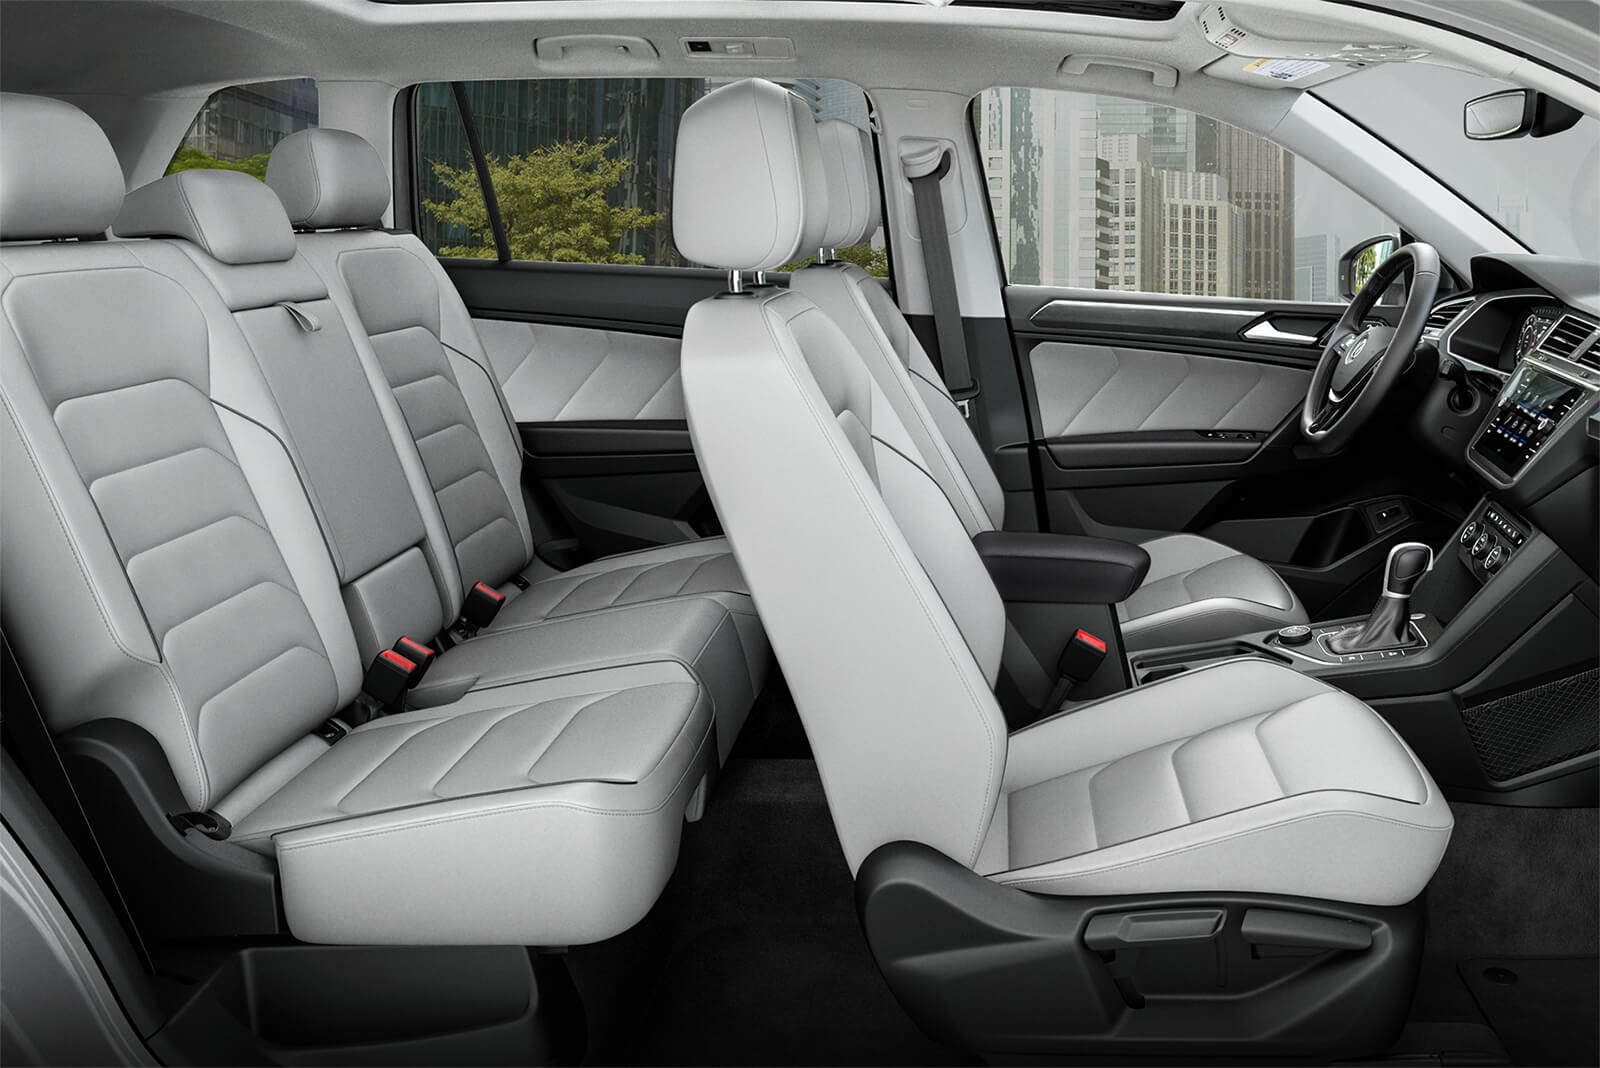 2019 Tiguan Full Seating